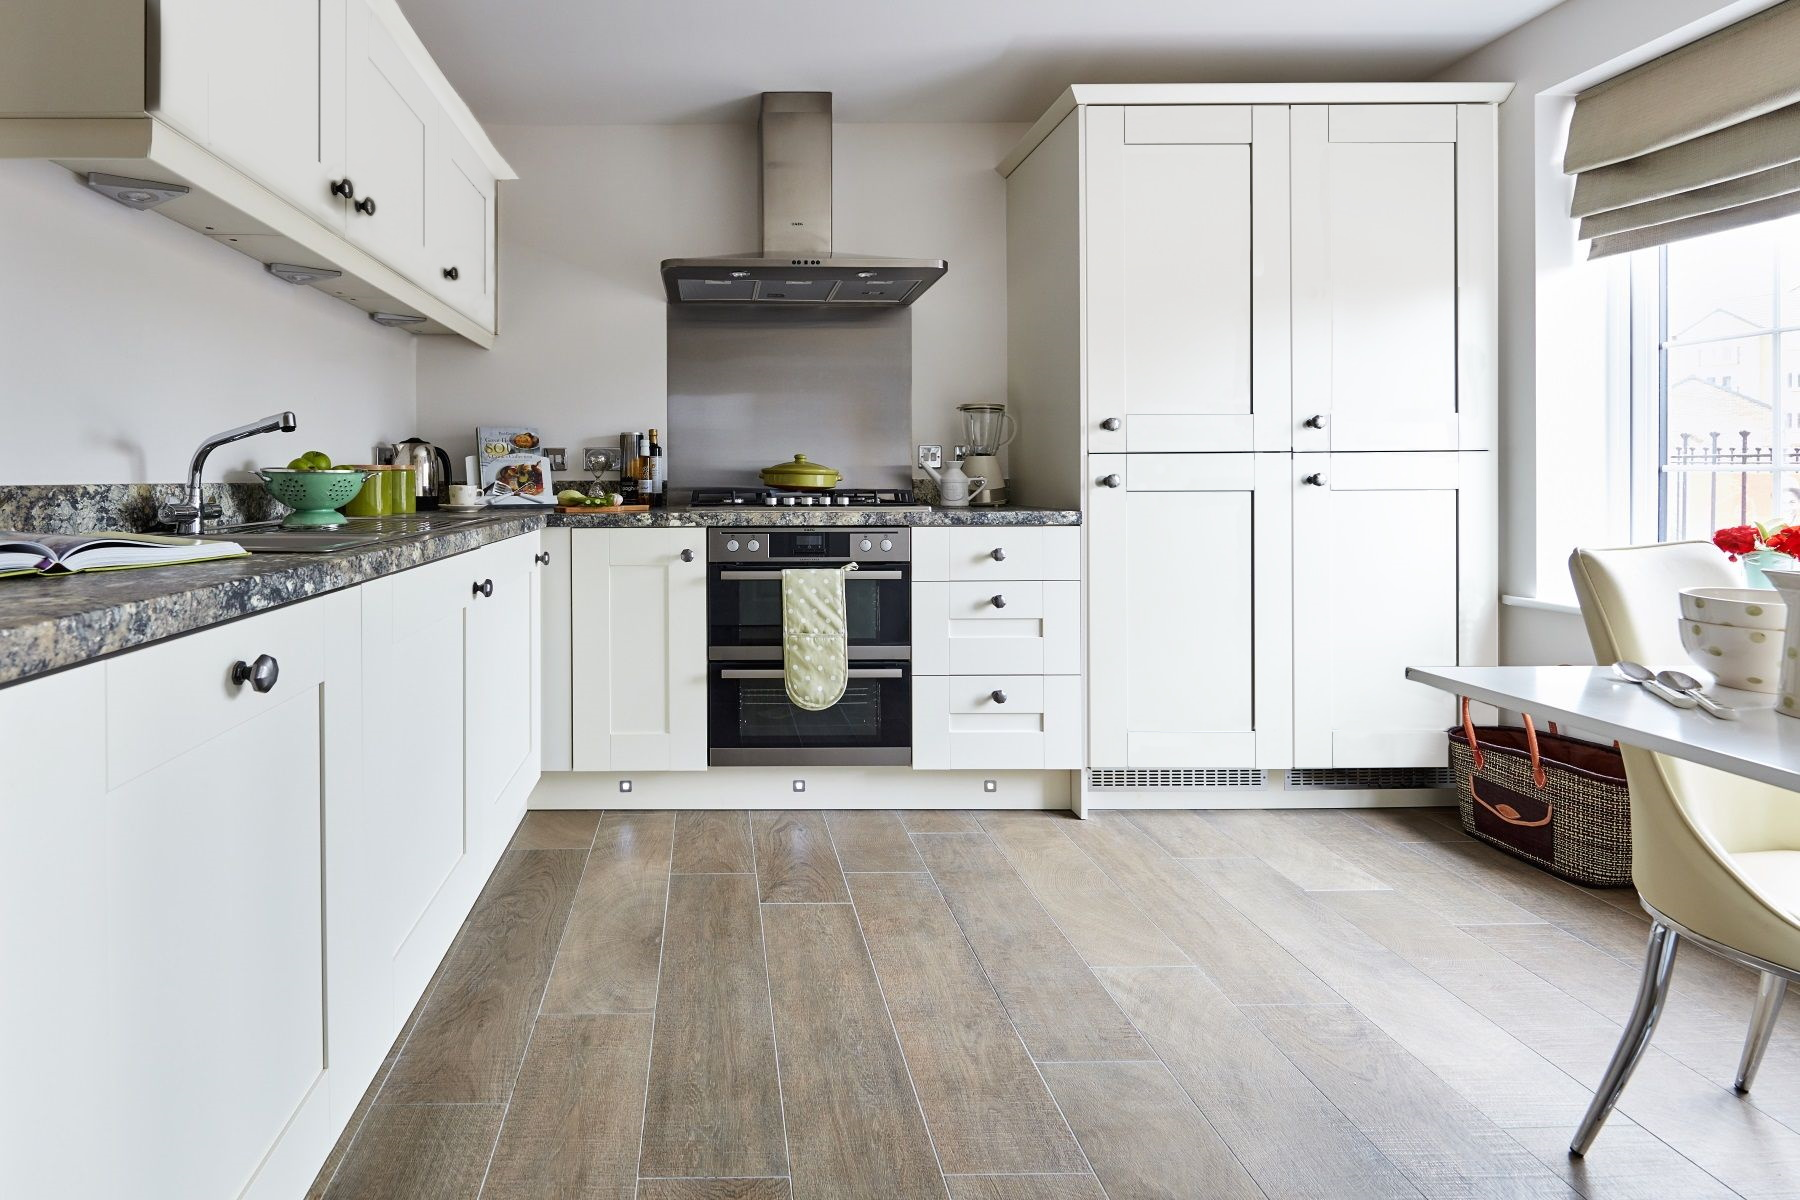 TW Exeter - Sherford - The Charlbury example kitchen 1A